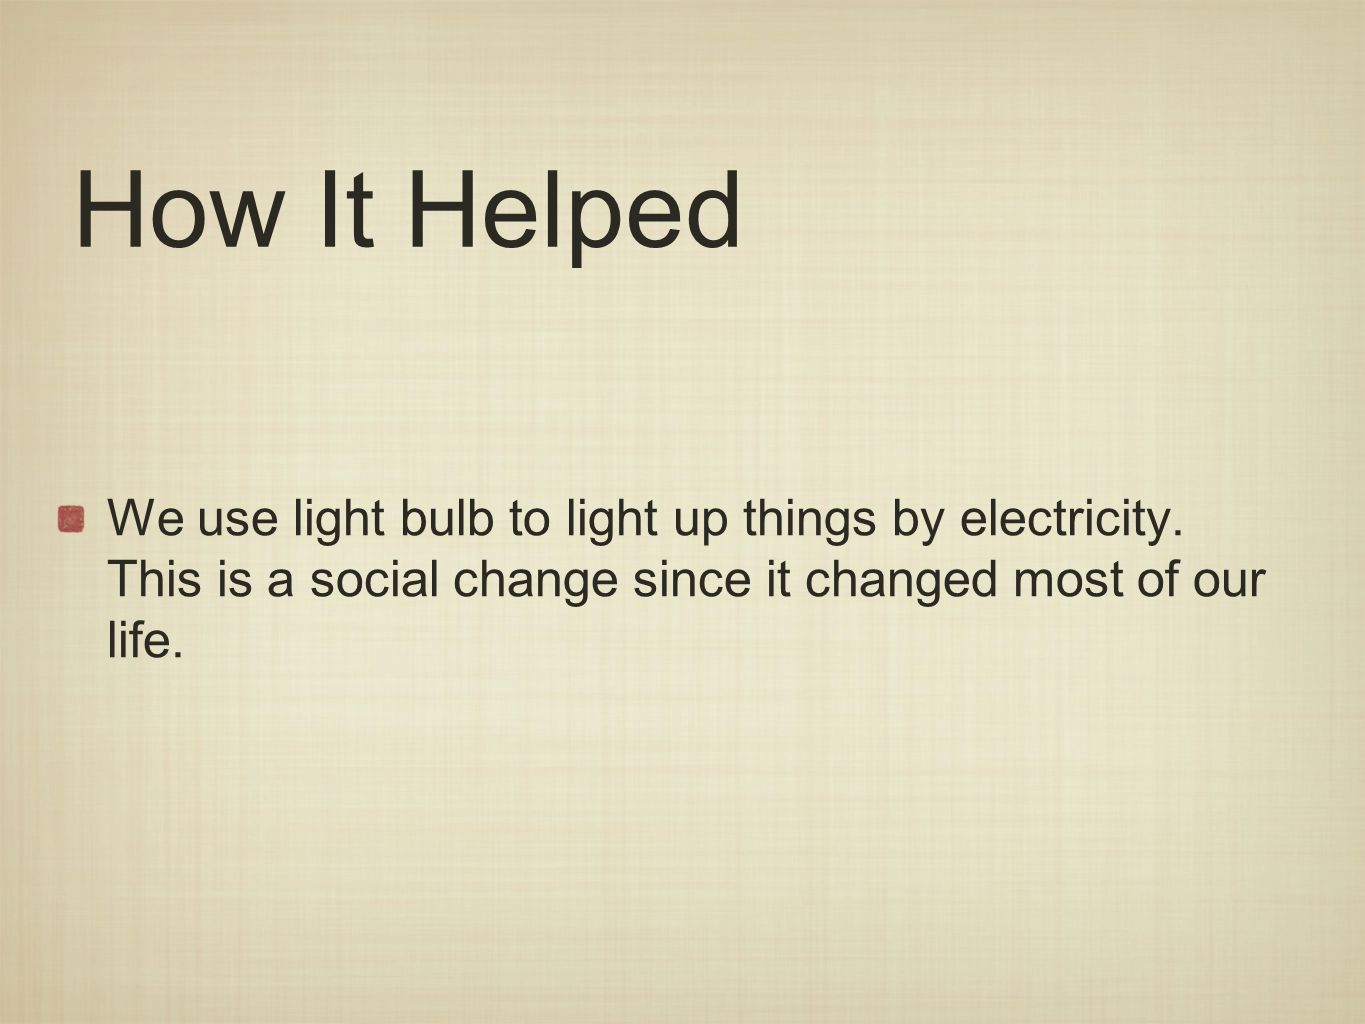 Environmental Light bulb is better than using oil lamps because it does not waste natural resources.